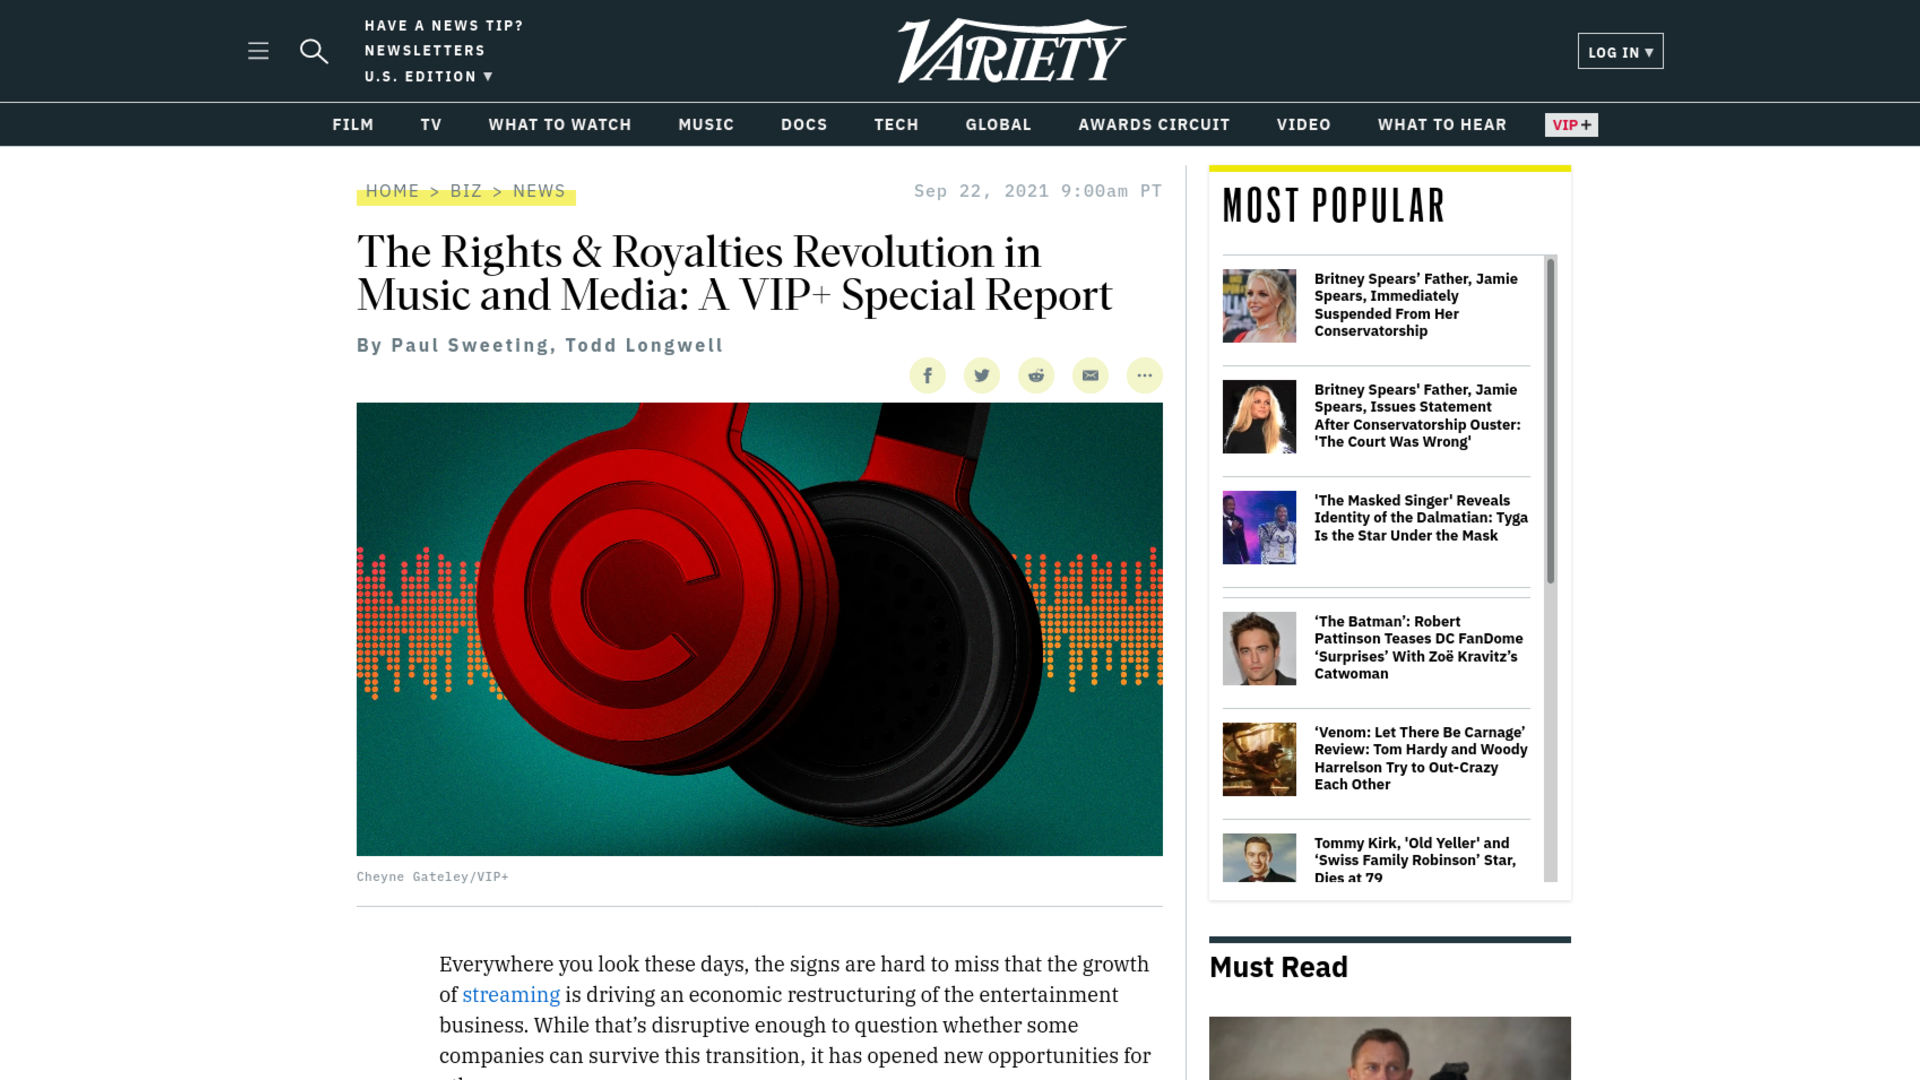 Fairness Rocks News The Rights & Royalties Revolution in Music and Media: A VIP+ Special Report